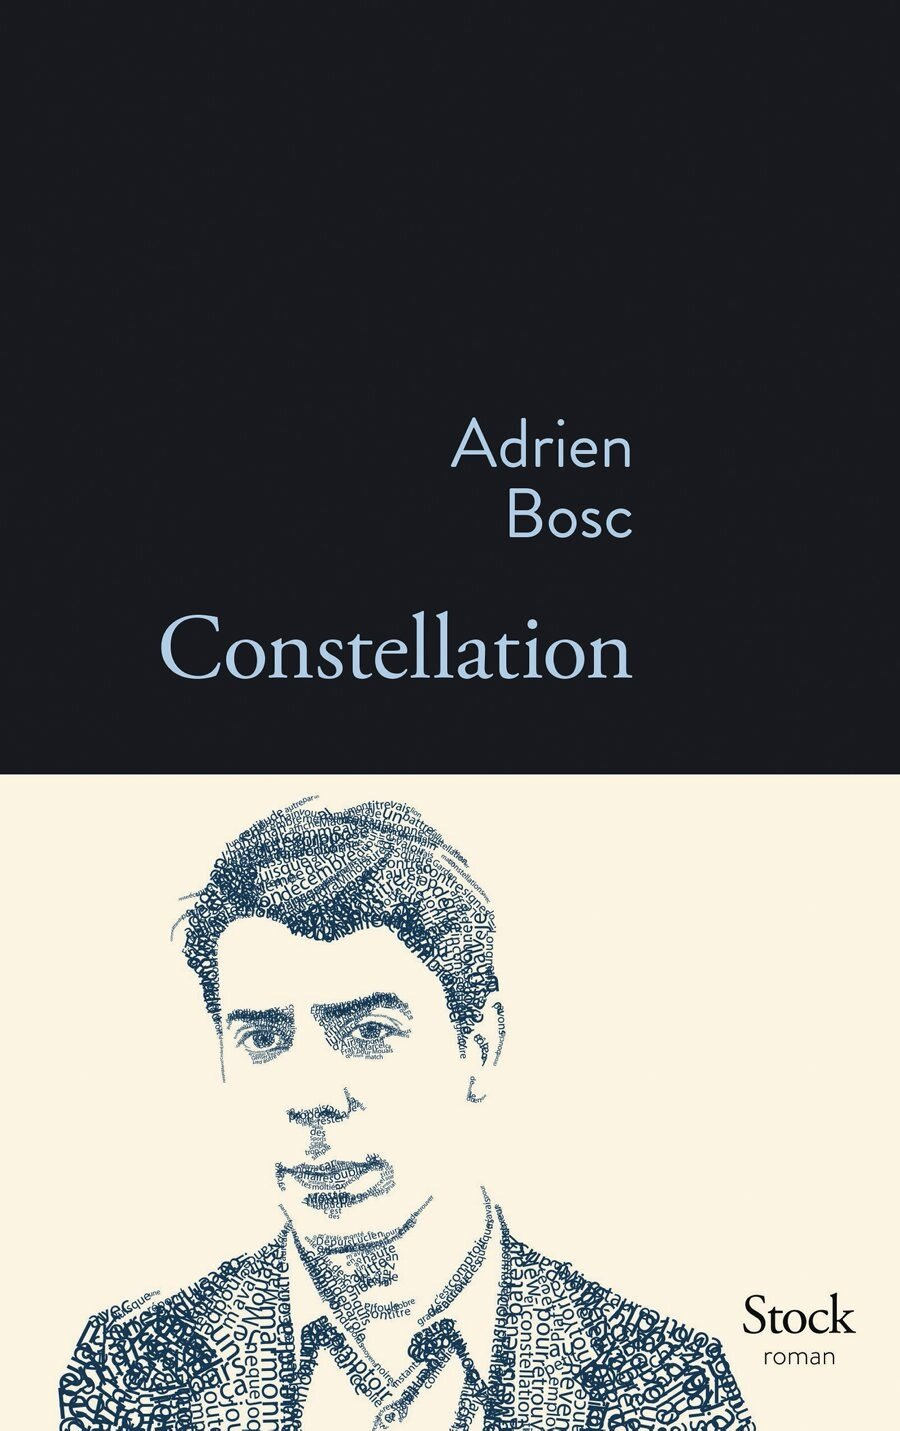 # 101 Constellation, Adrien Bosc